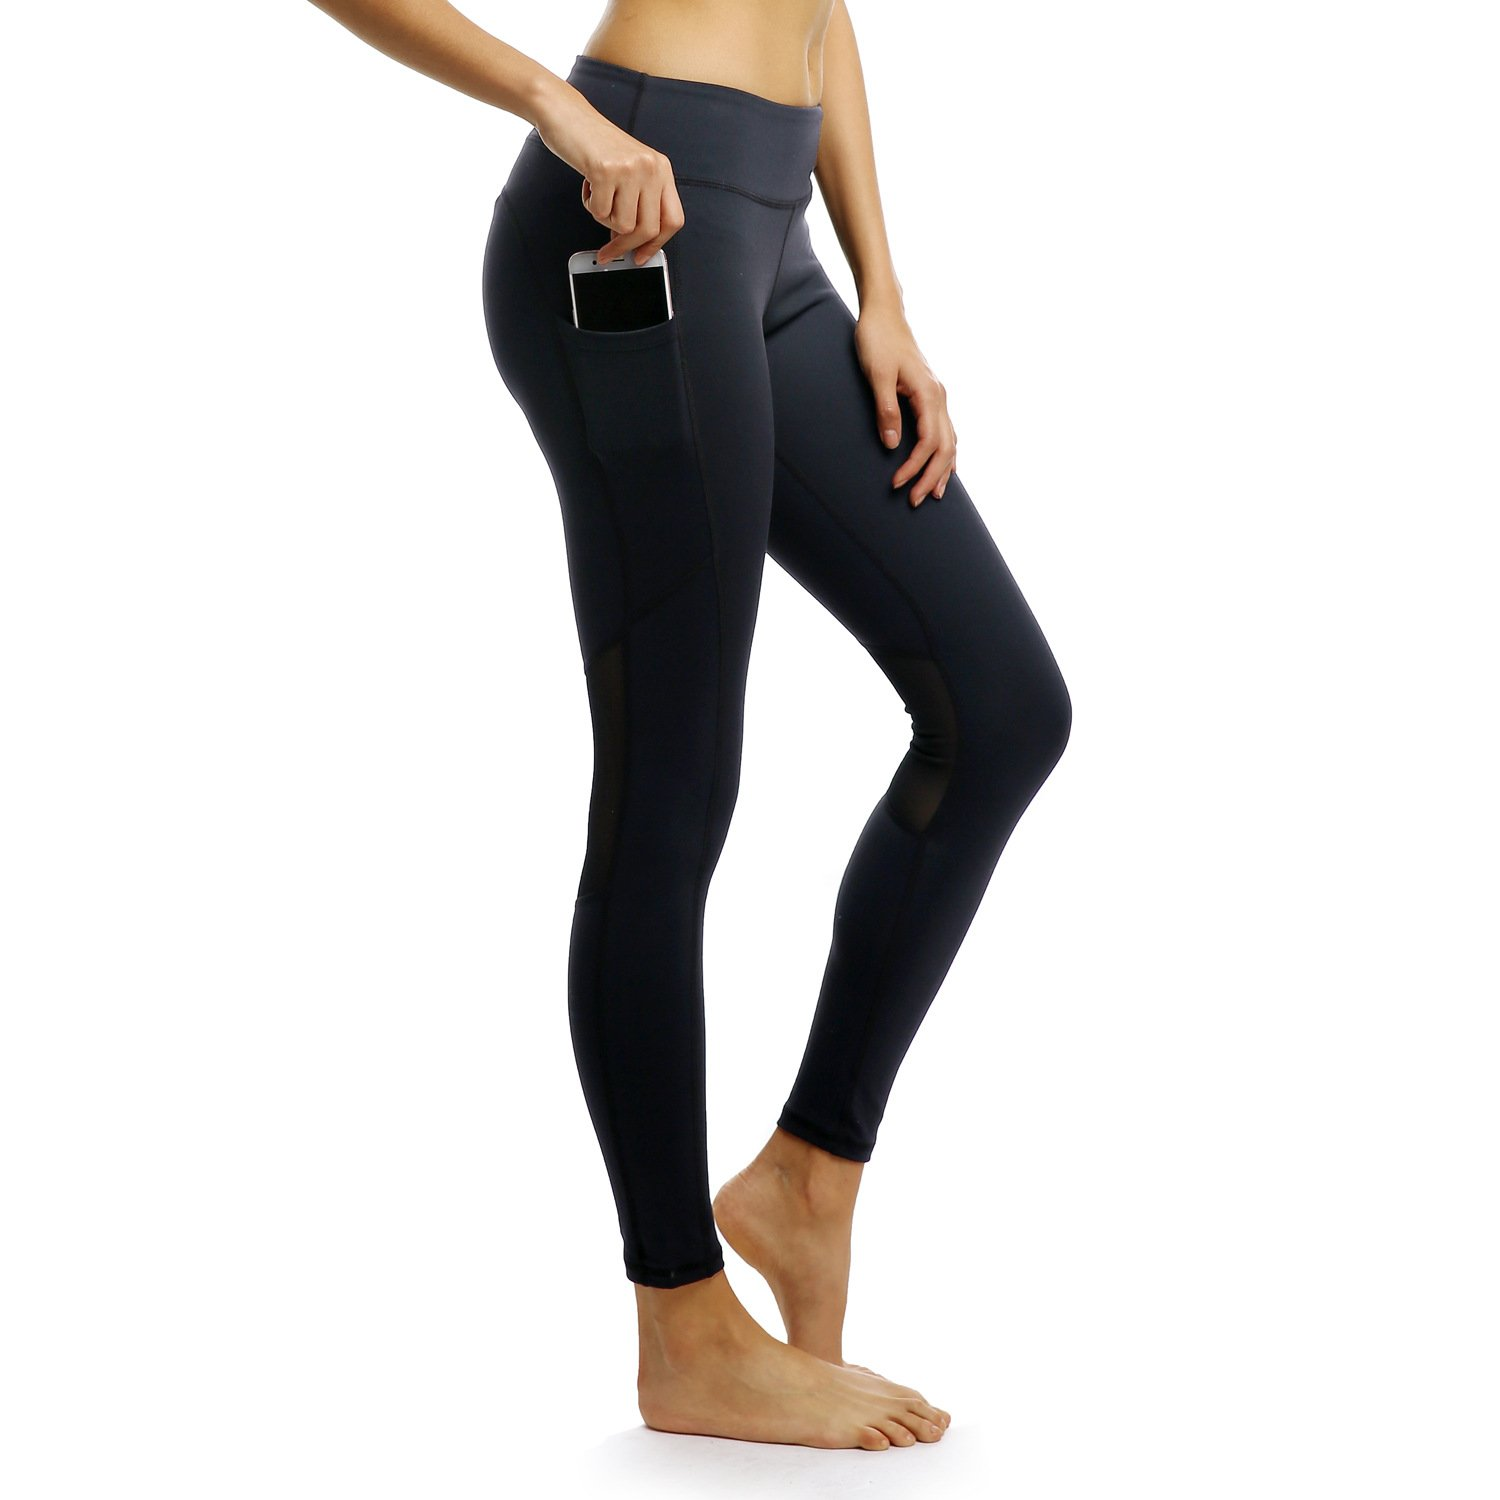 4889f3f035d06 WIDELY USE IN DAILY LIFT- Perfect for yoga pants,exercise,fitness,running,any  type of workout leggings